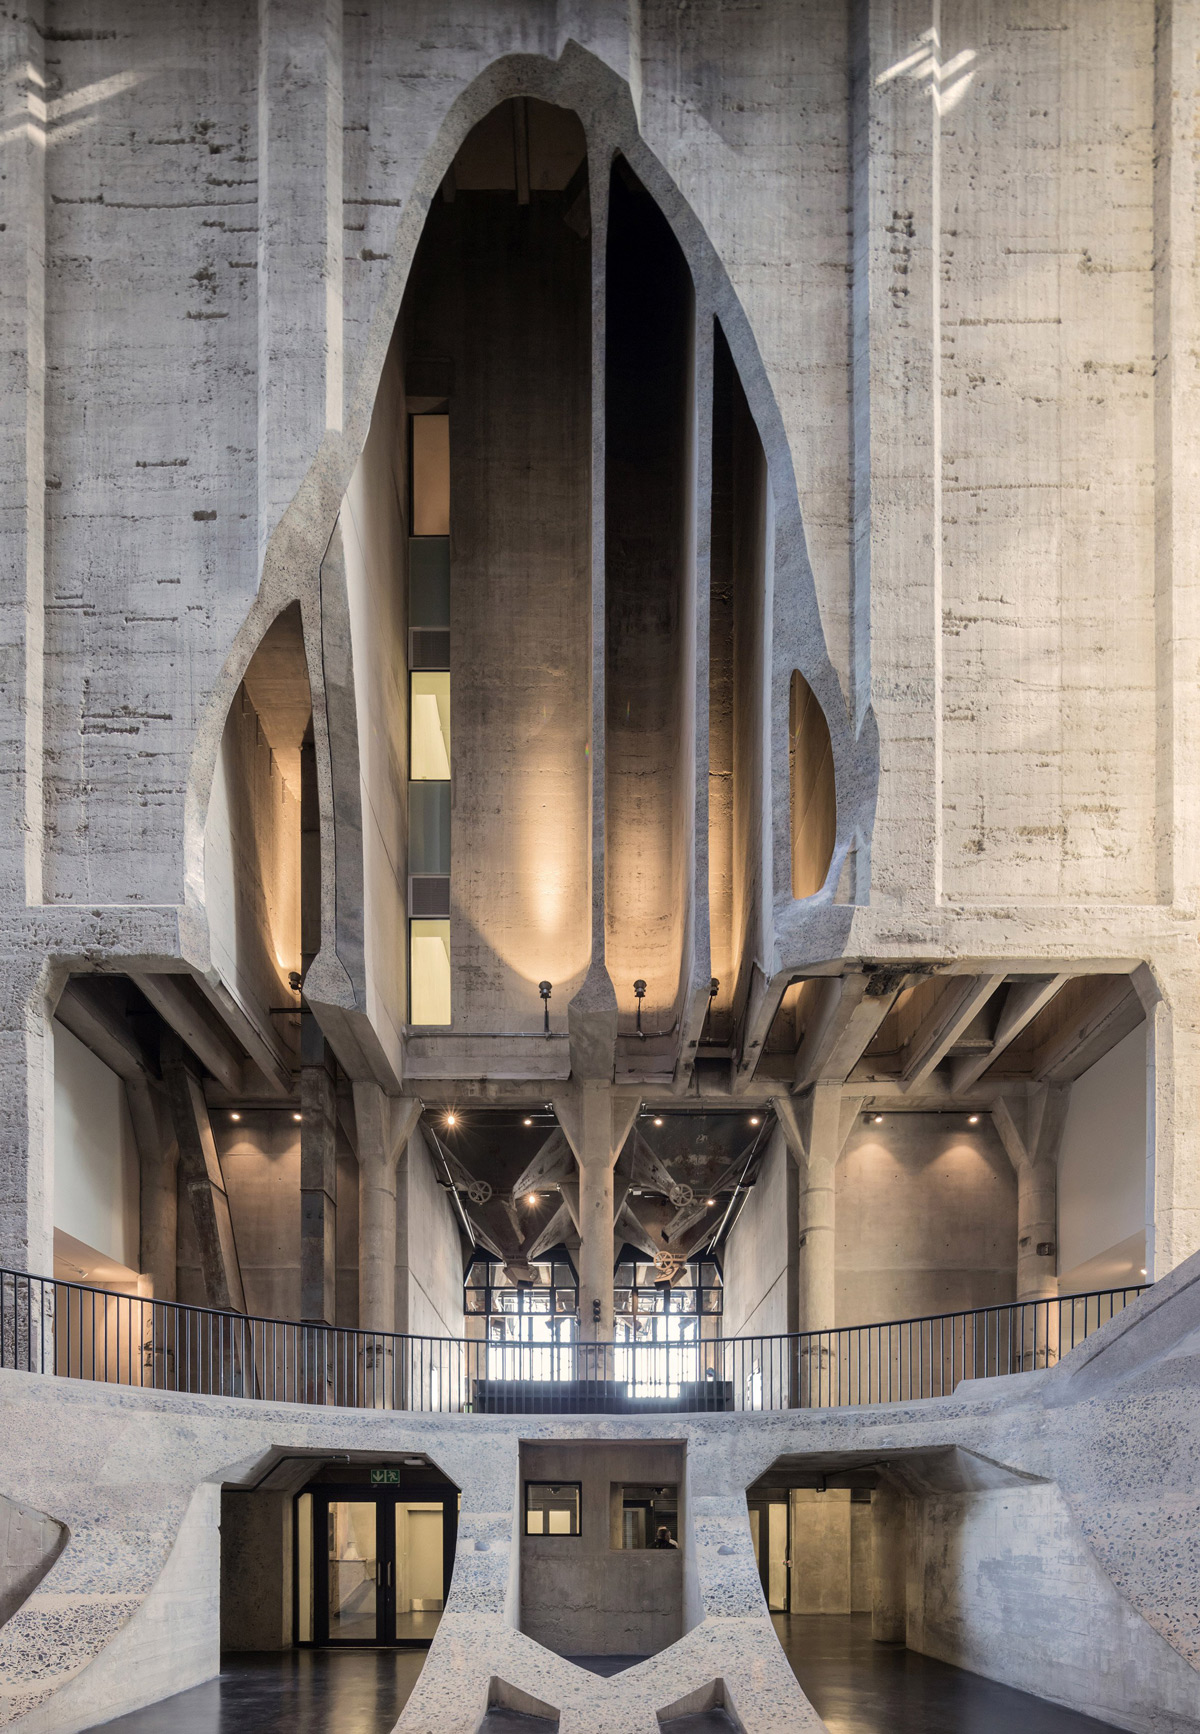 An Historic Cape Town Grain Silo Converted into 80 Cylindrical Art Galleries